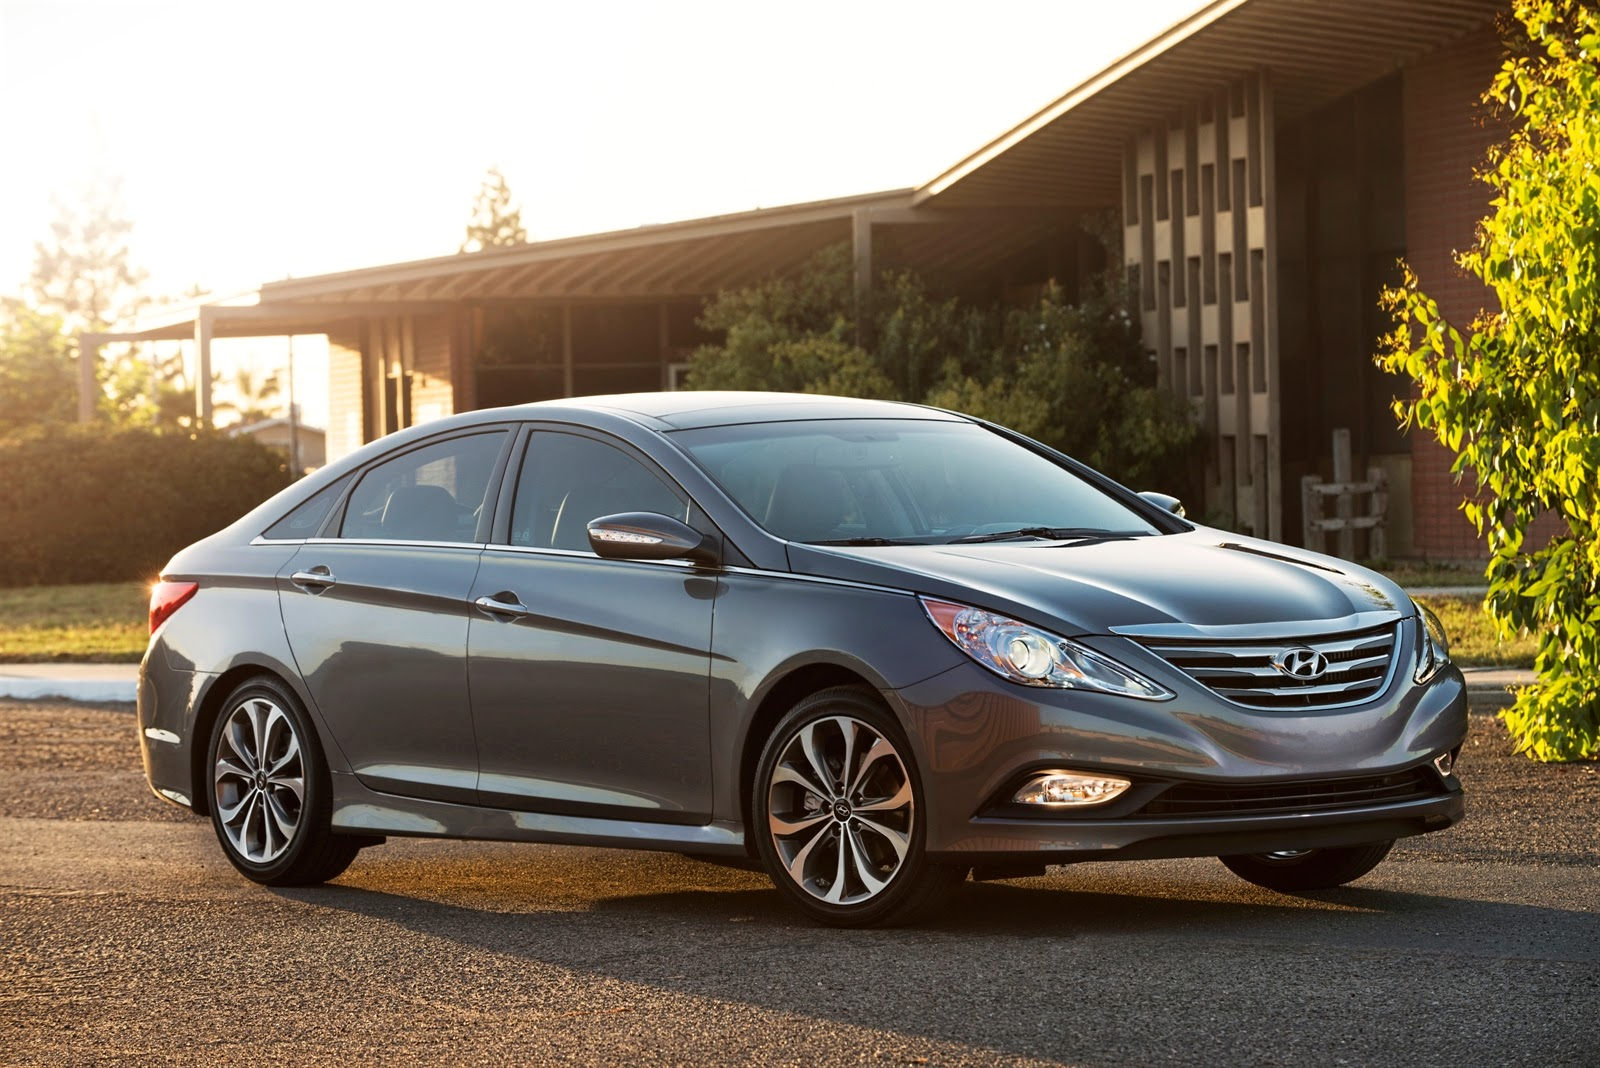 Psst, have you looked at the Hyundai Sonata?